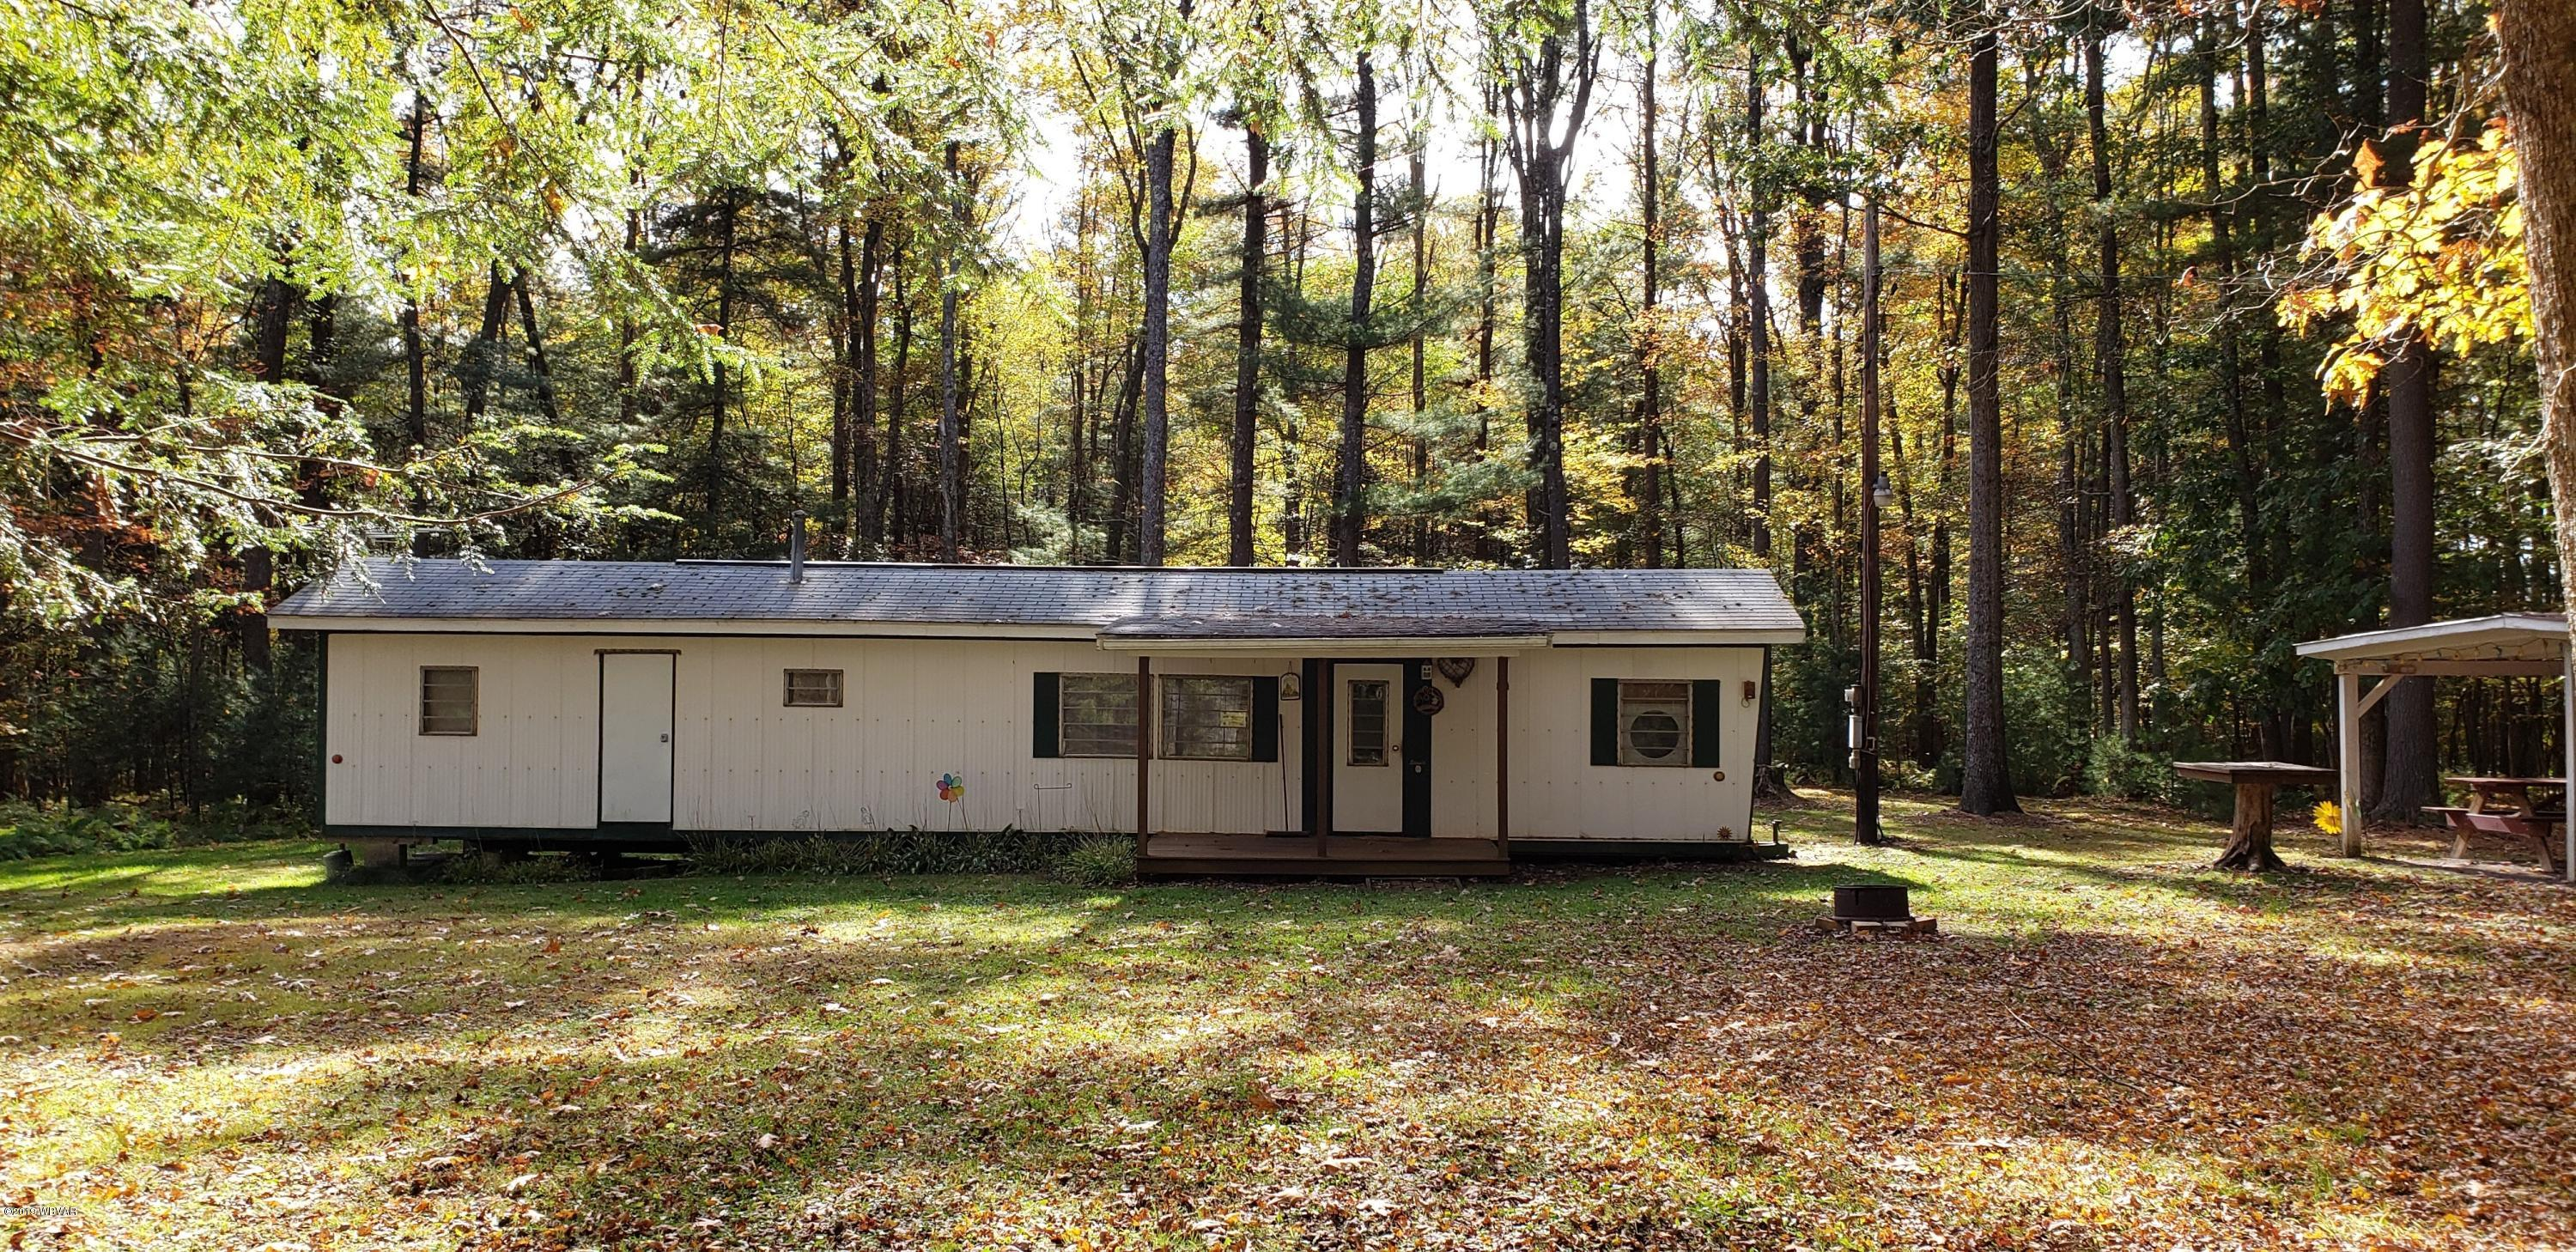 84 DINGS LANE,Renovo,PA 17764,2 Bedrooms Bedrooms,1 BathroomBathrooms,Cabin/vacation home,DINGS,WB-88838